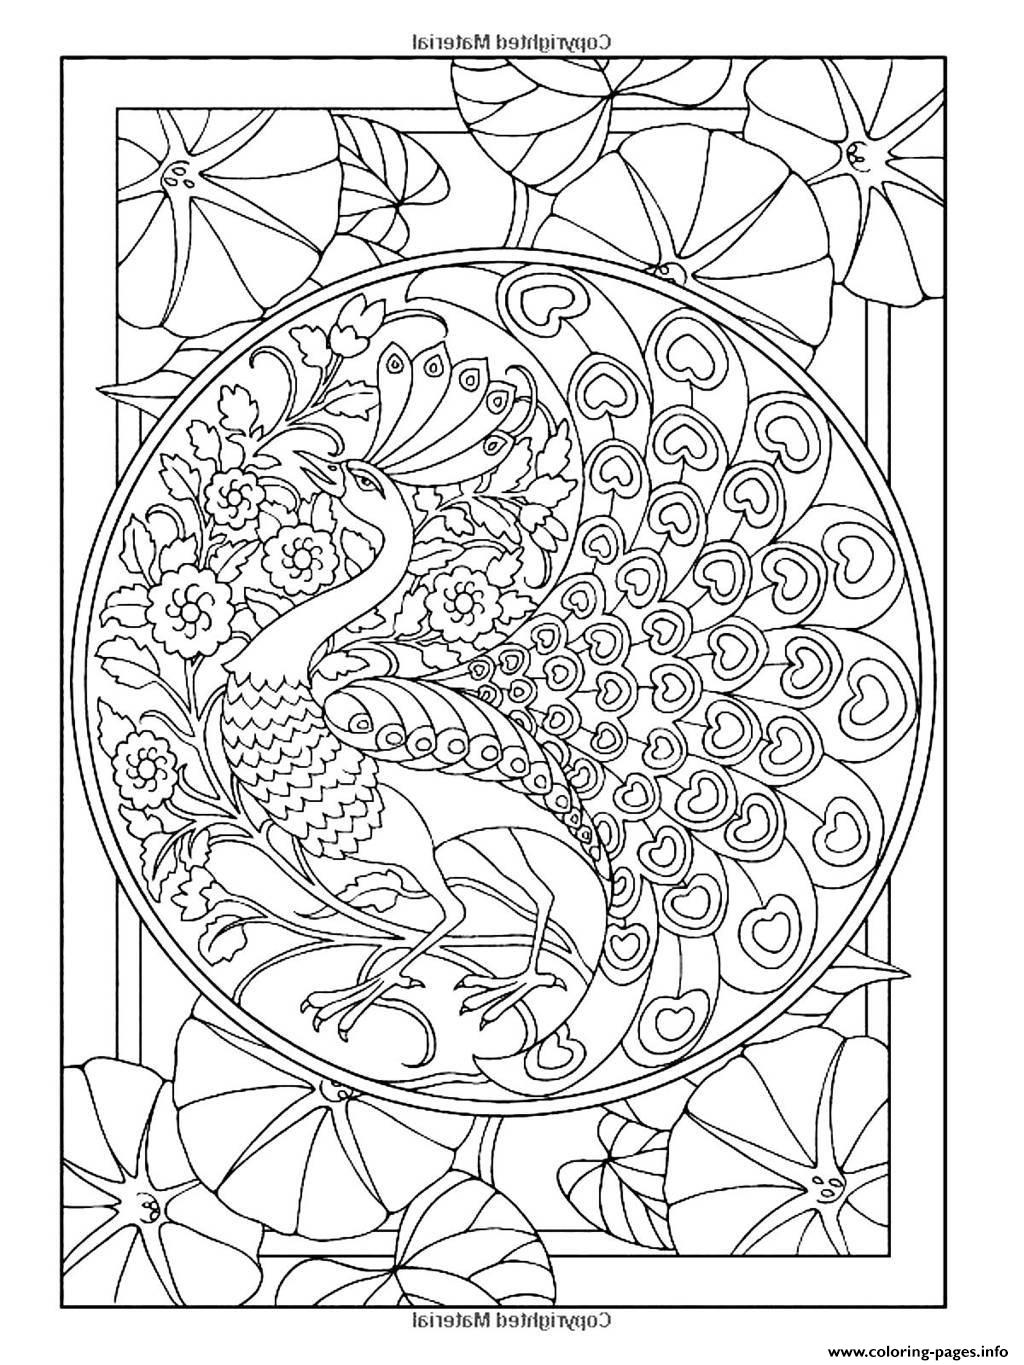 peacock coloring pages for adults peacock coloring pages for adults coloring home peacock adults pages coloring for